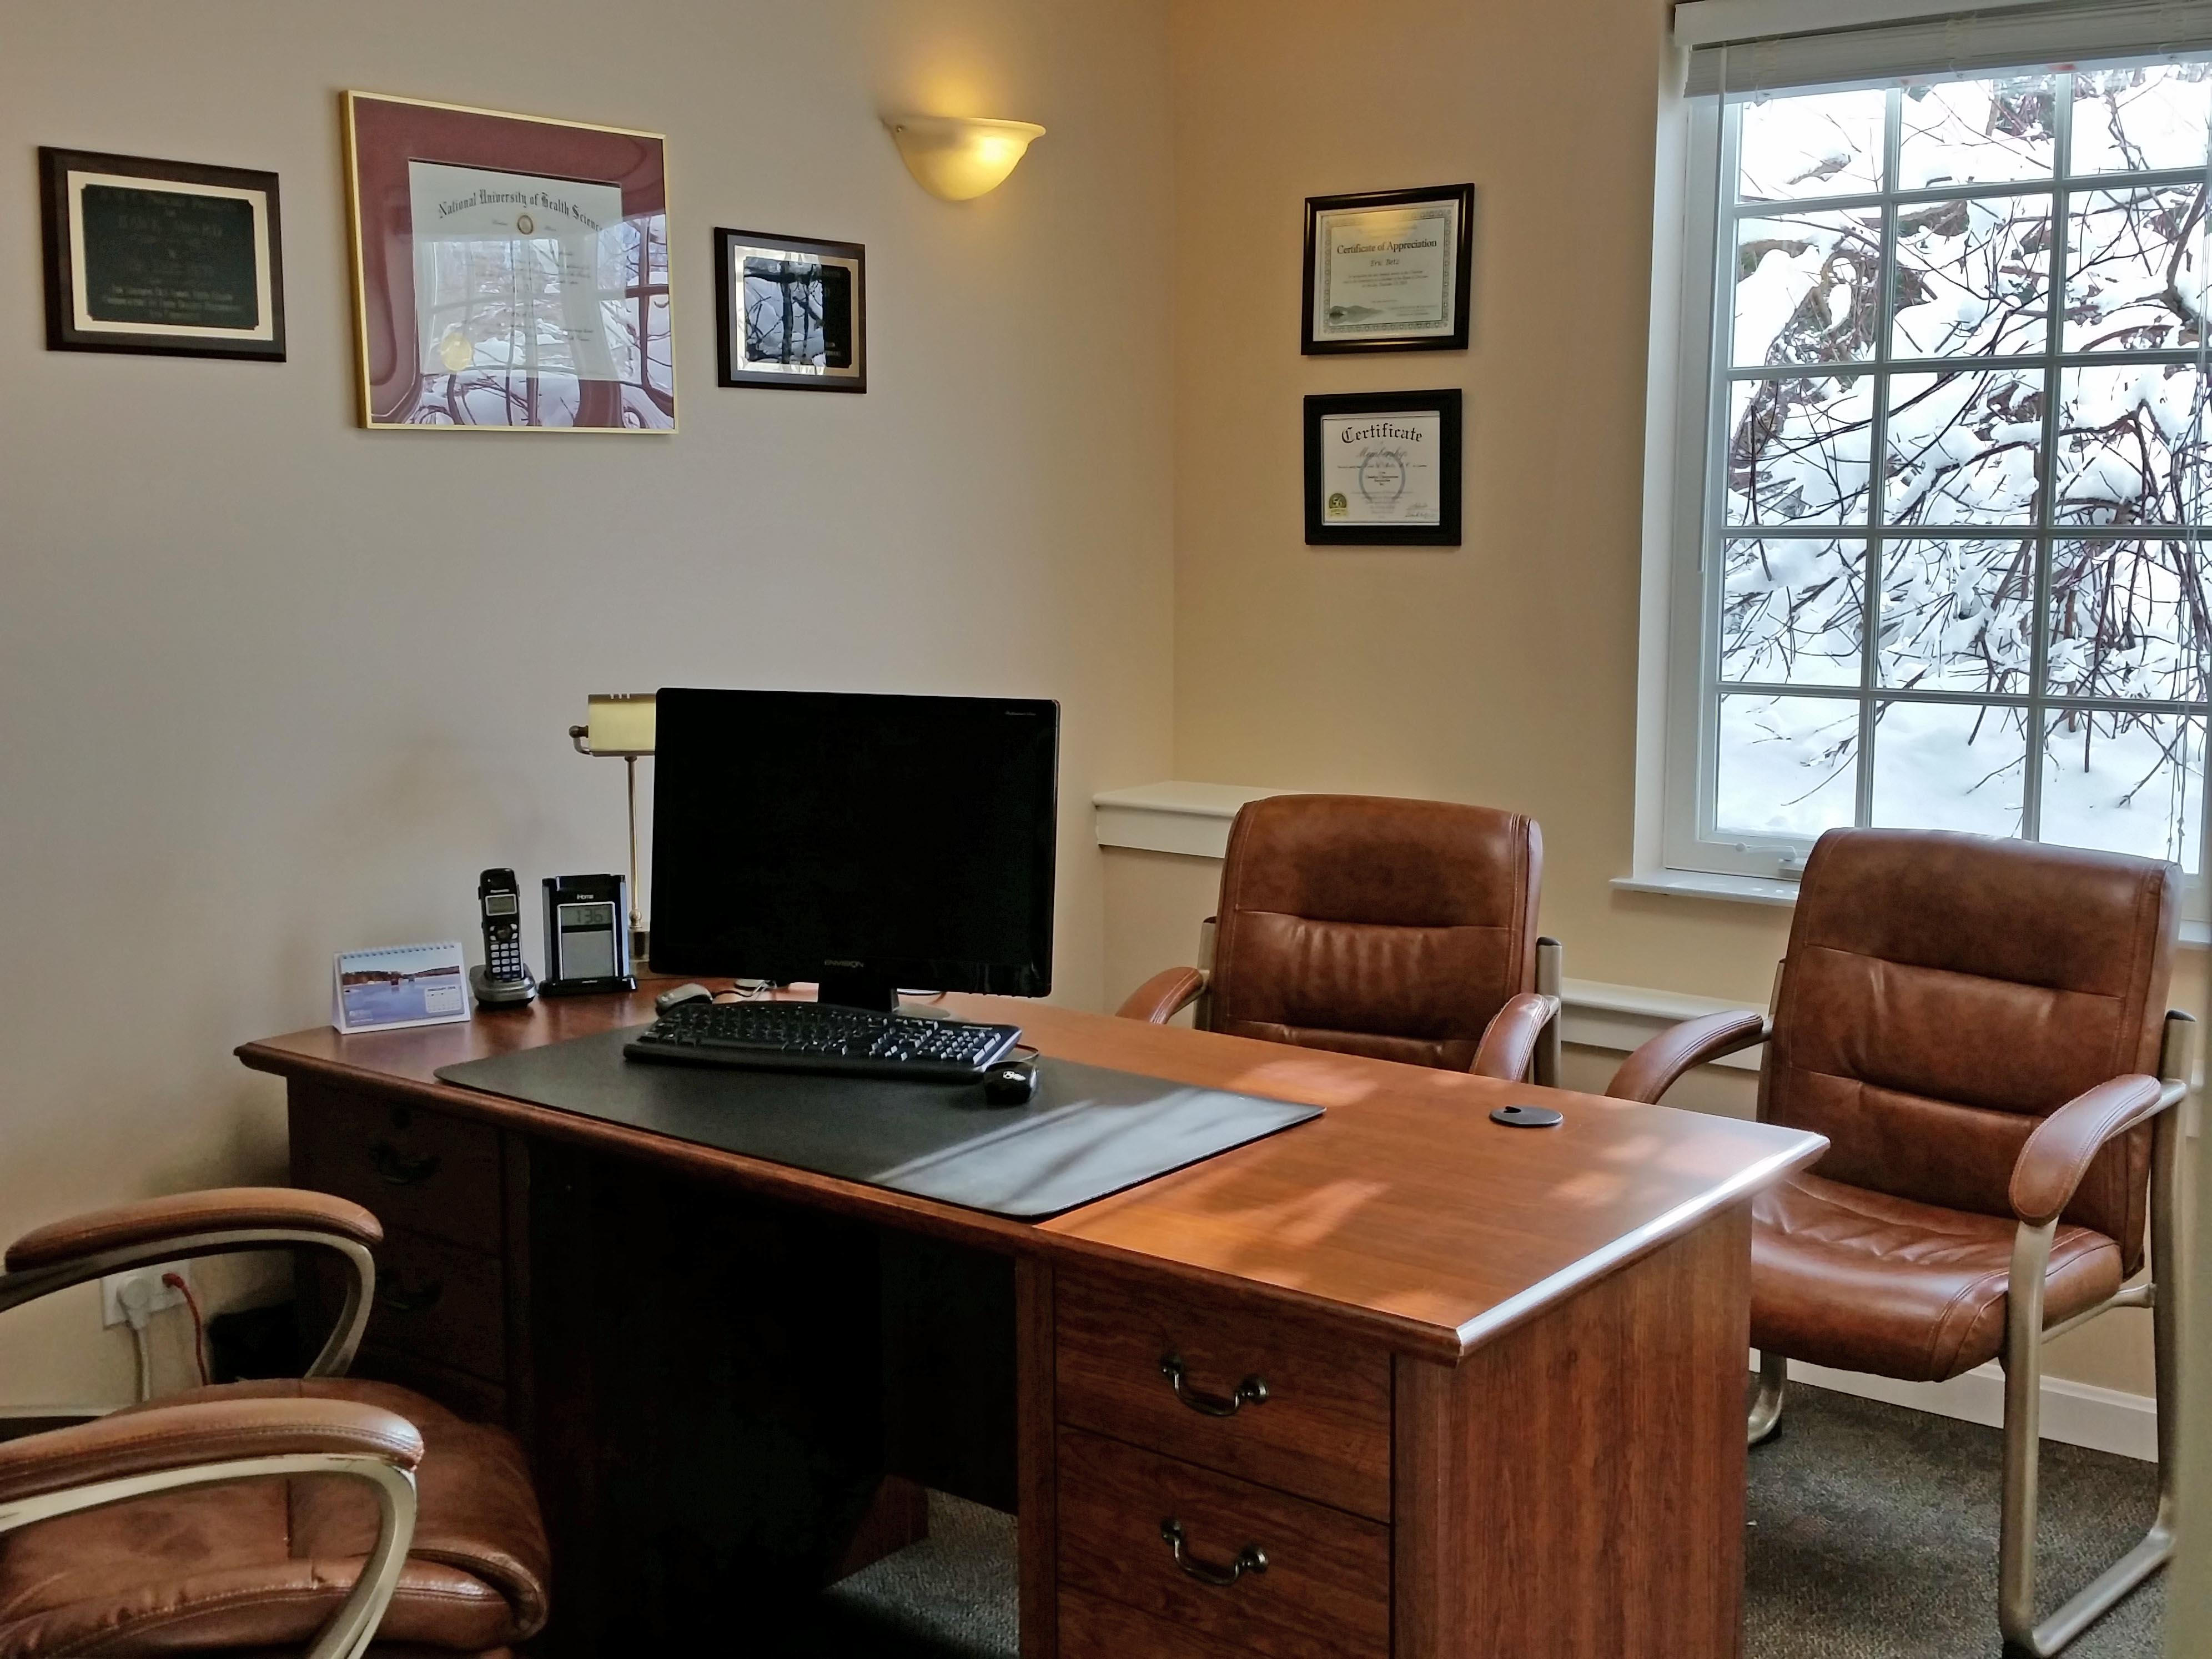 Doctors office – consultation room